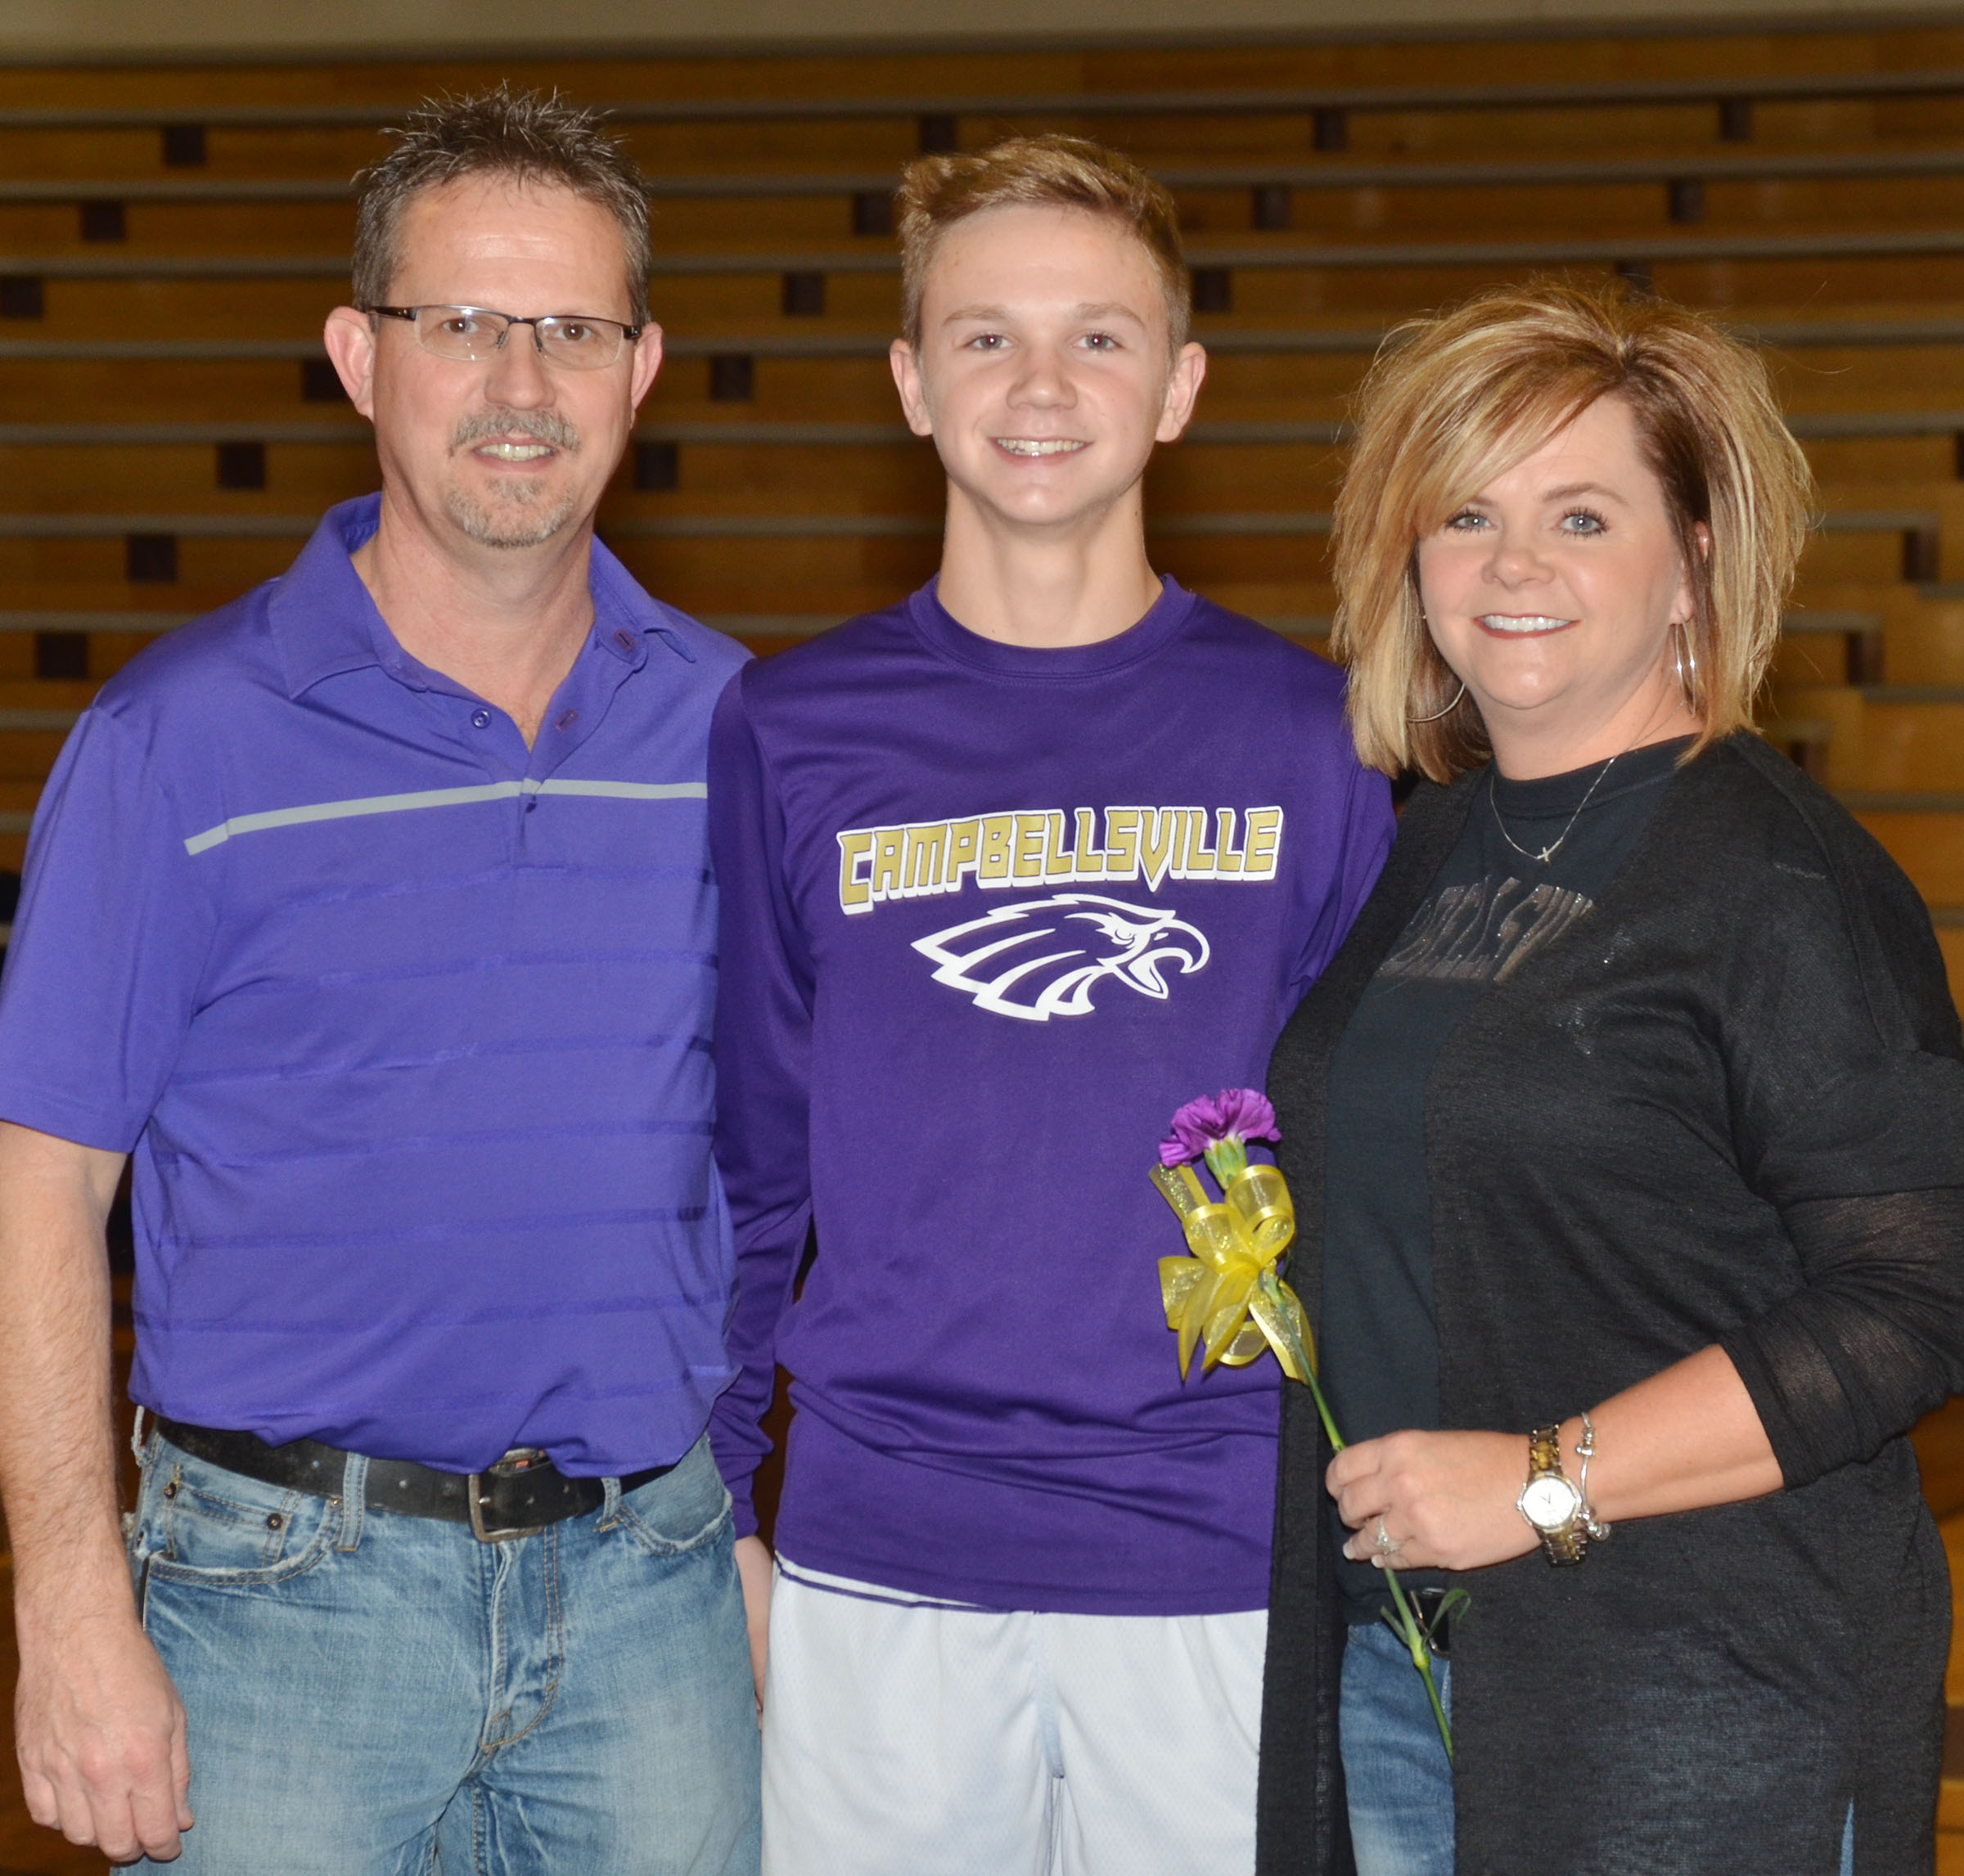 CMS eighth-grader Blase Wheatley is honored. He is pictured with his parents, Sue Ann and Barry.